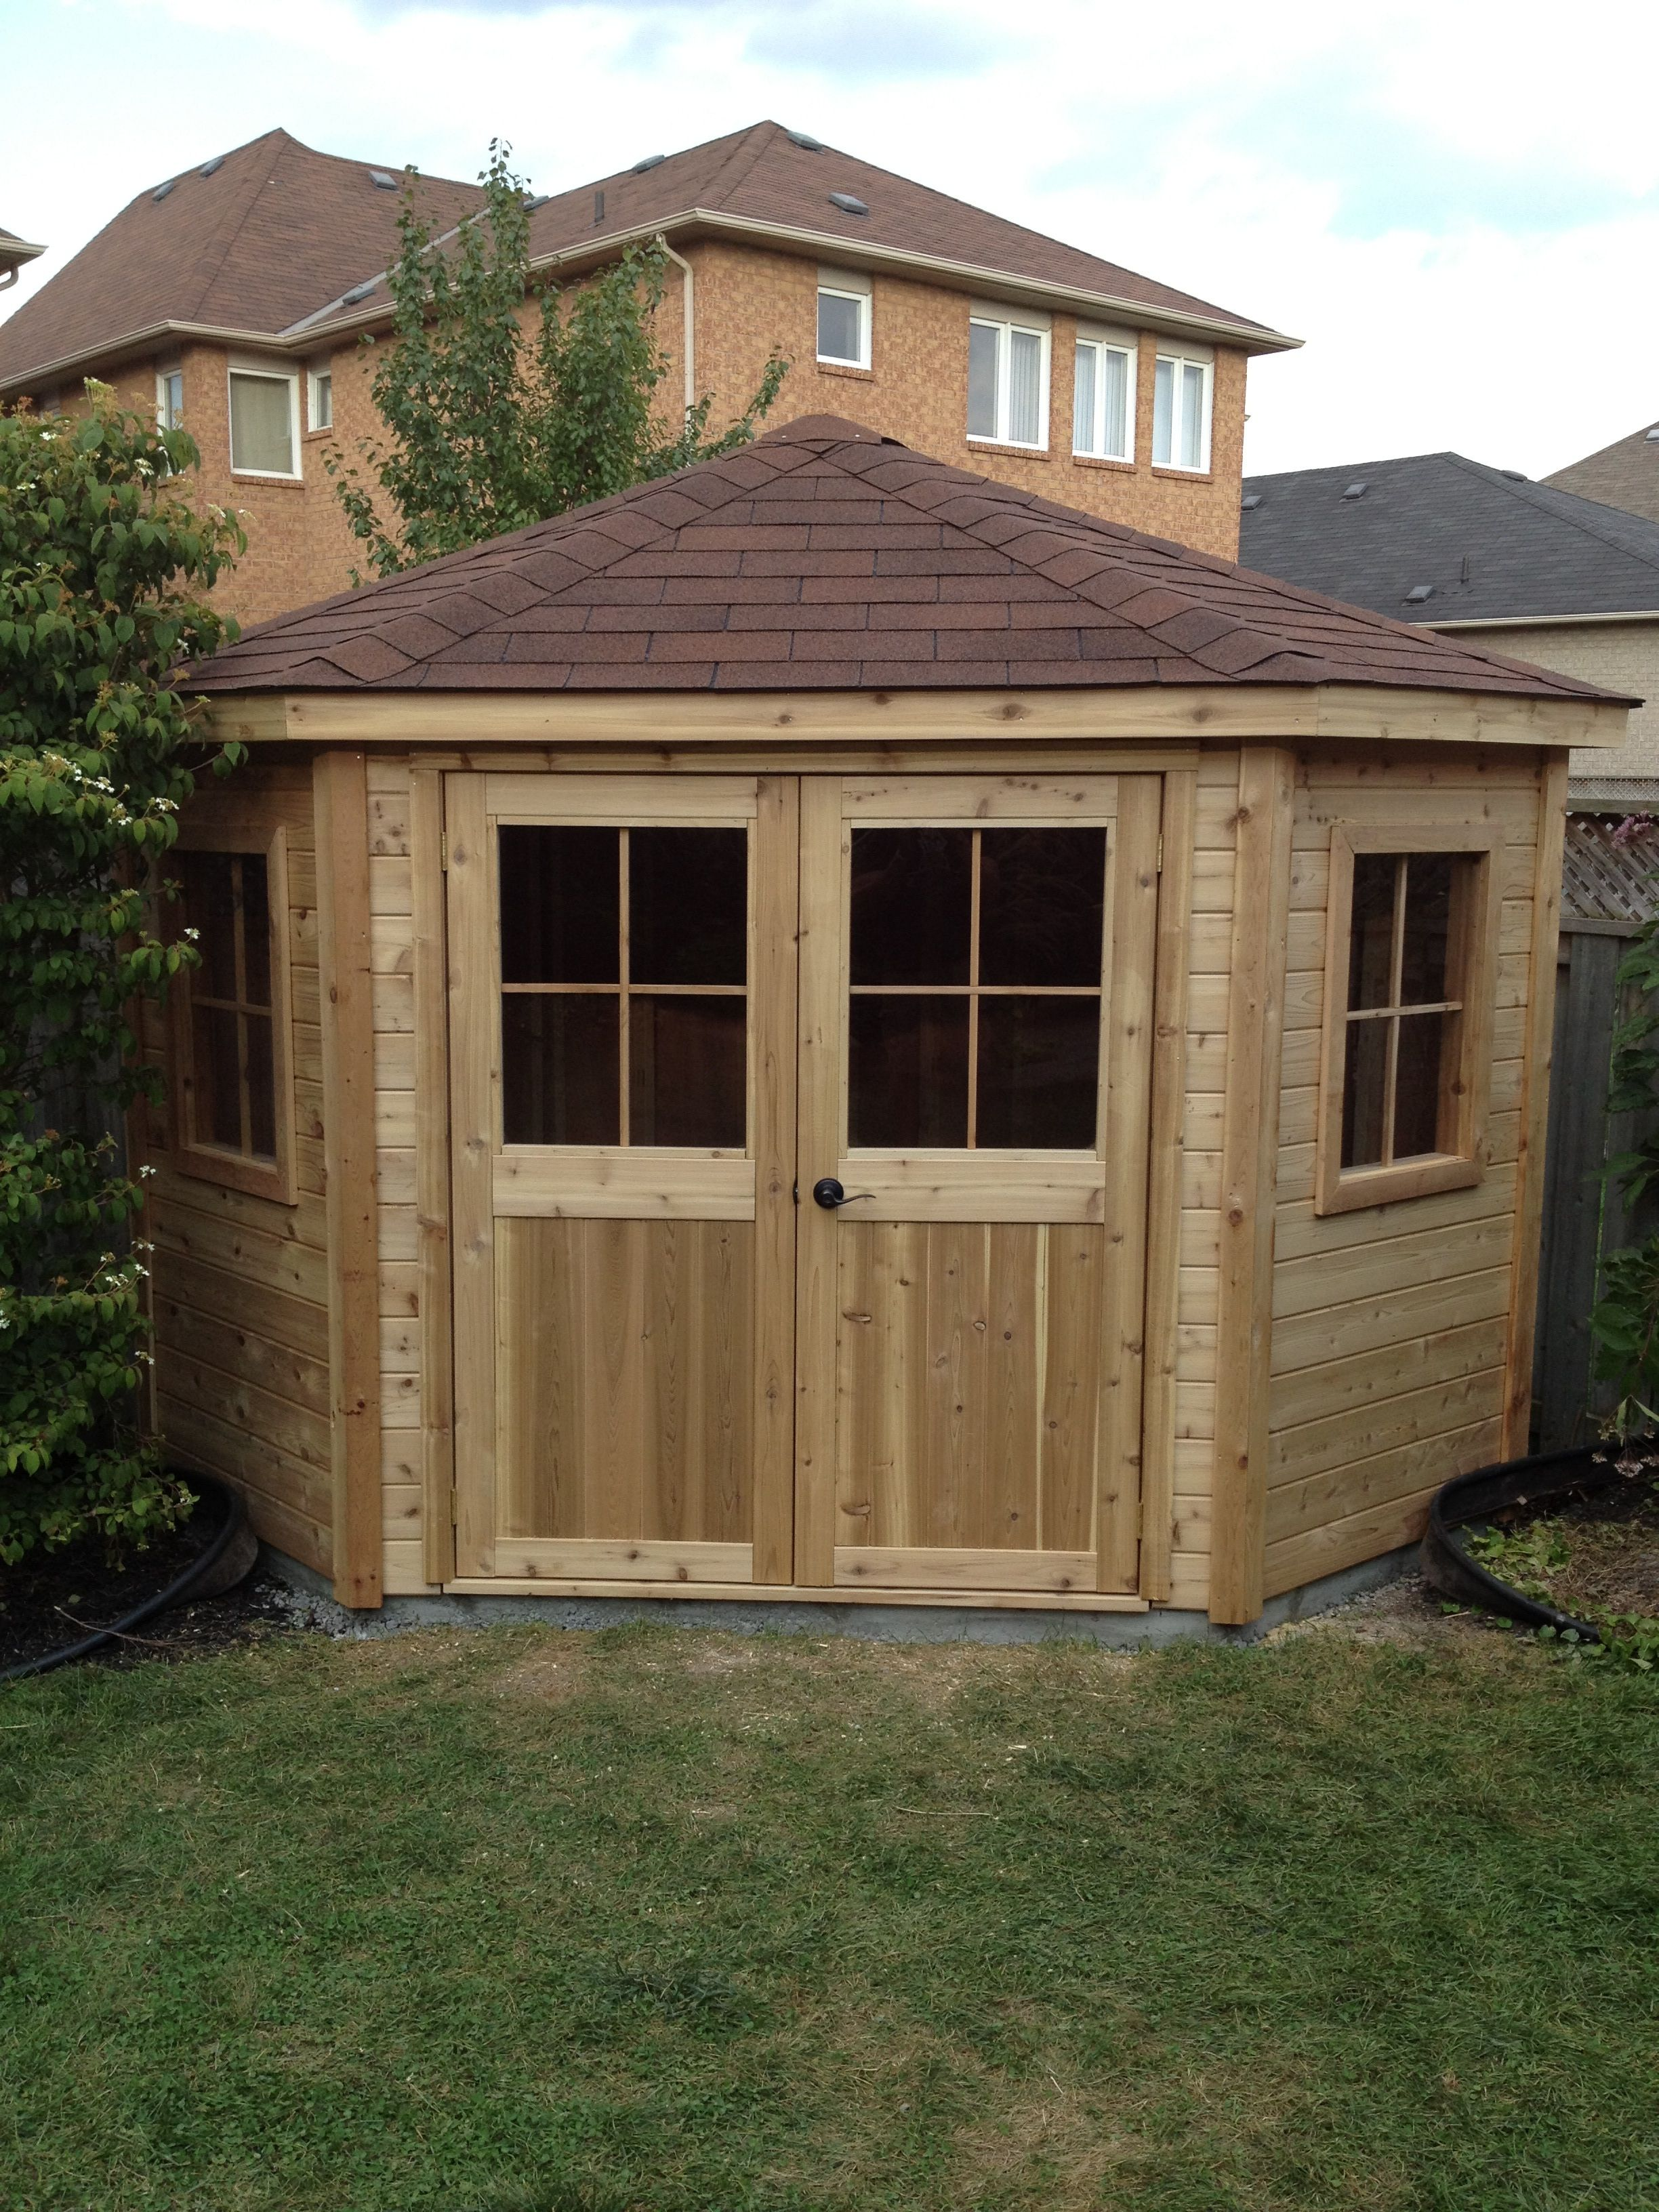 8x8 Cedar pentagon shed custom built and designed by RenoNate